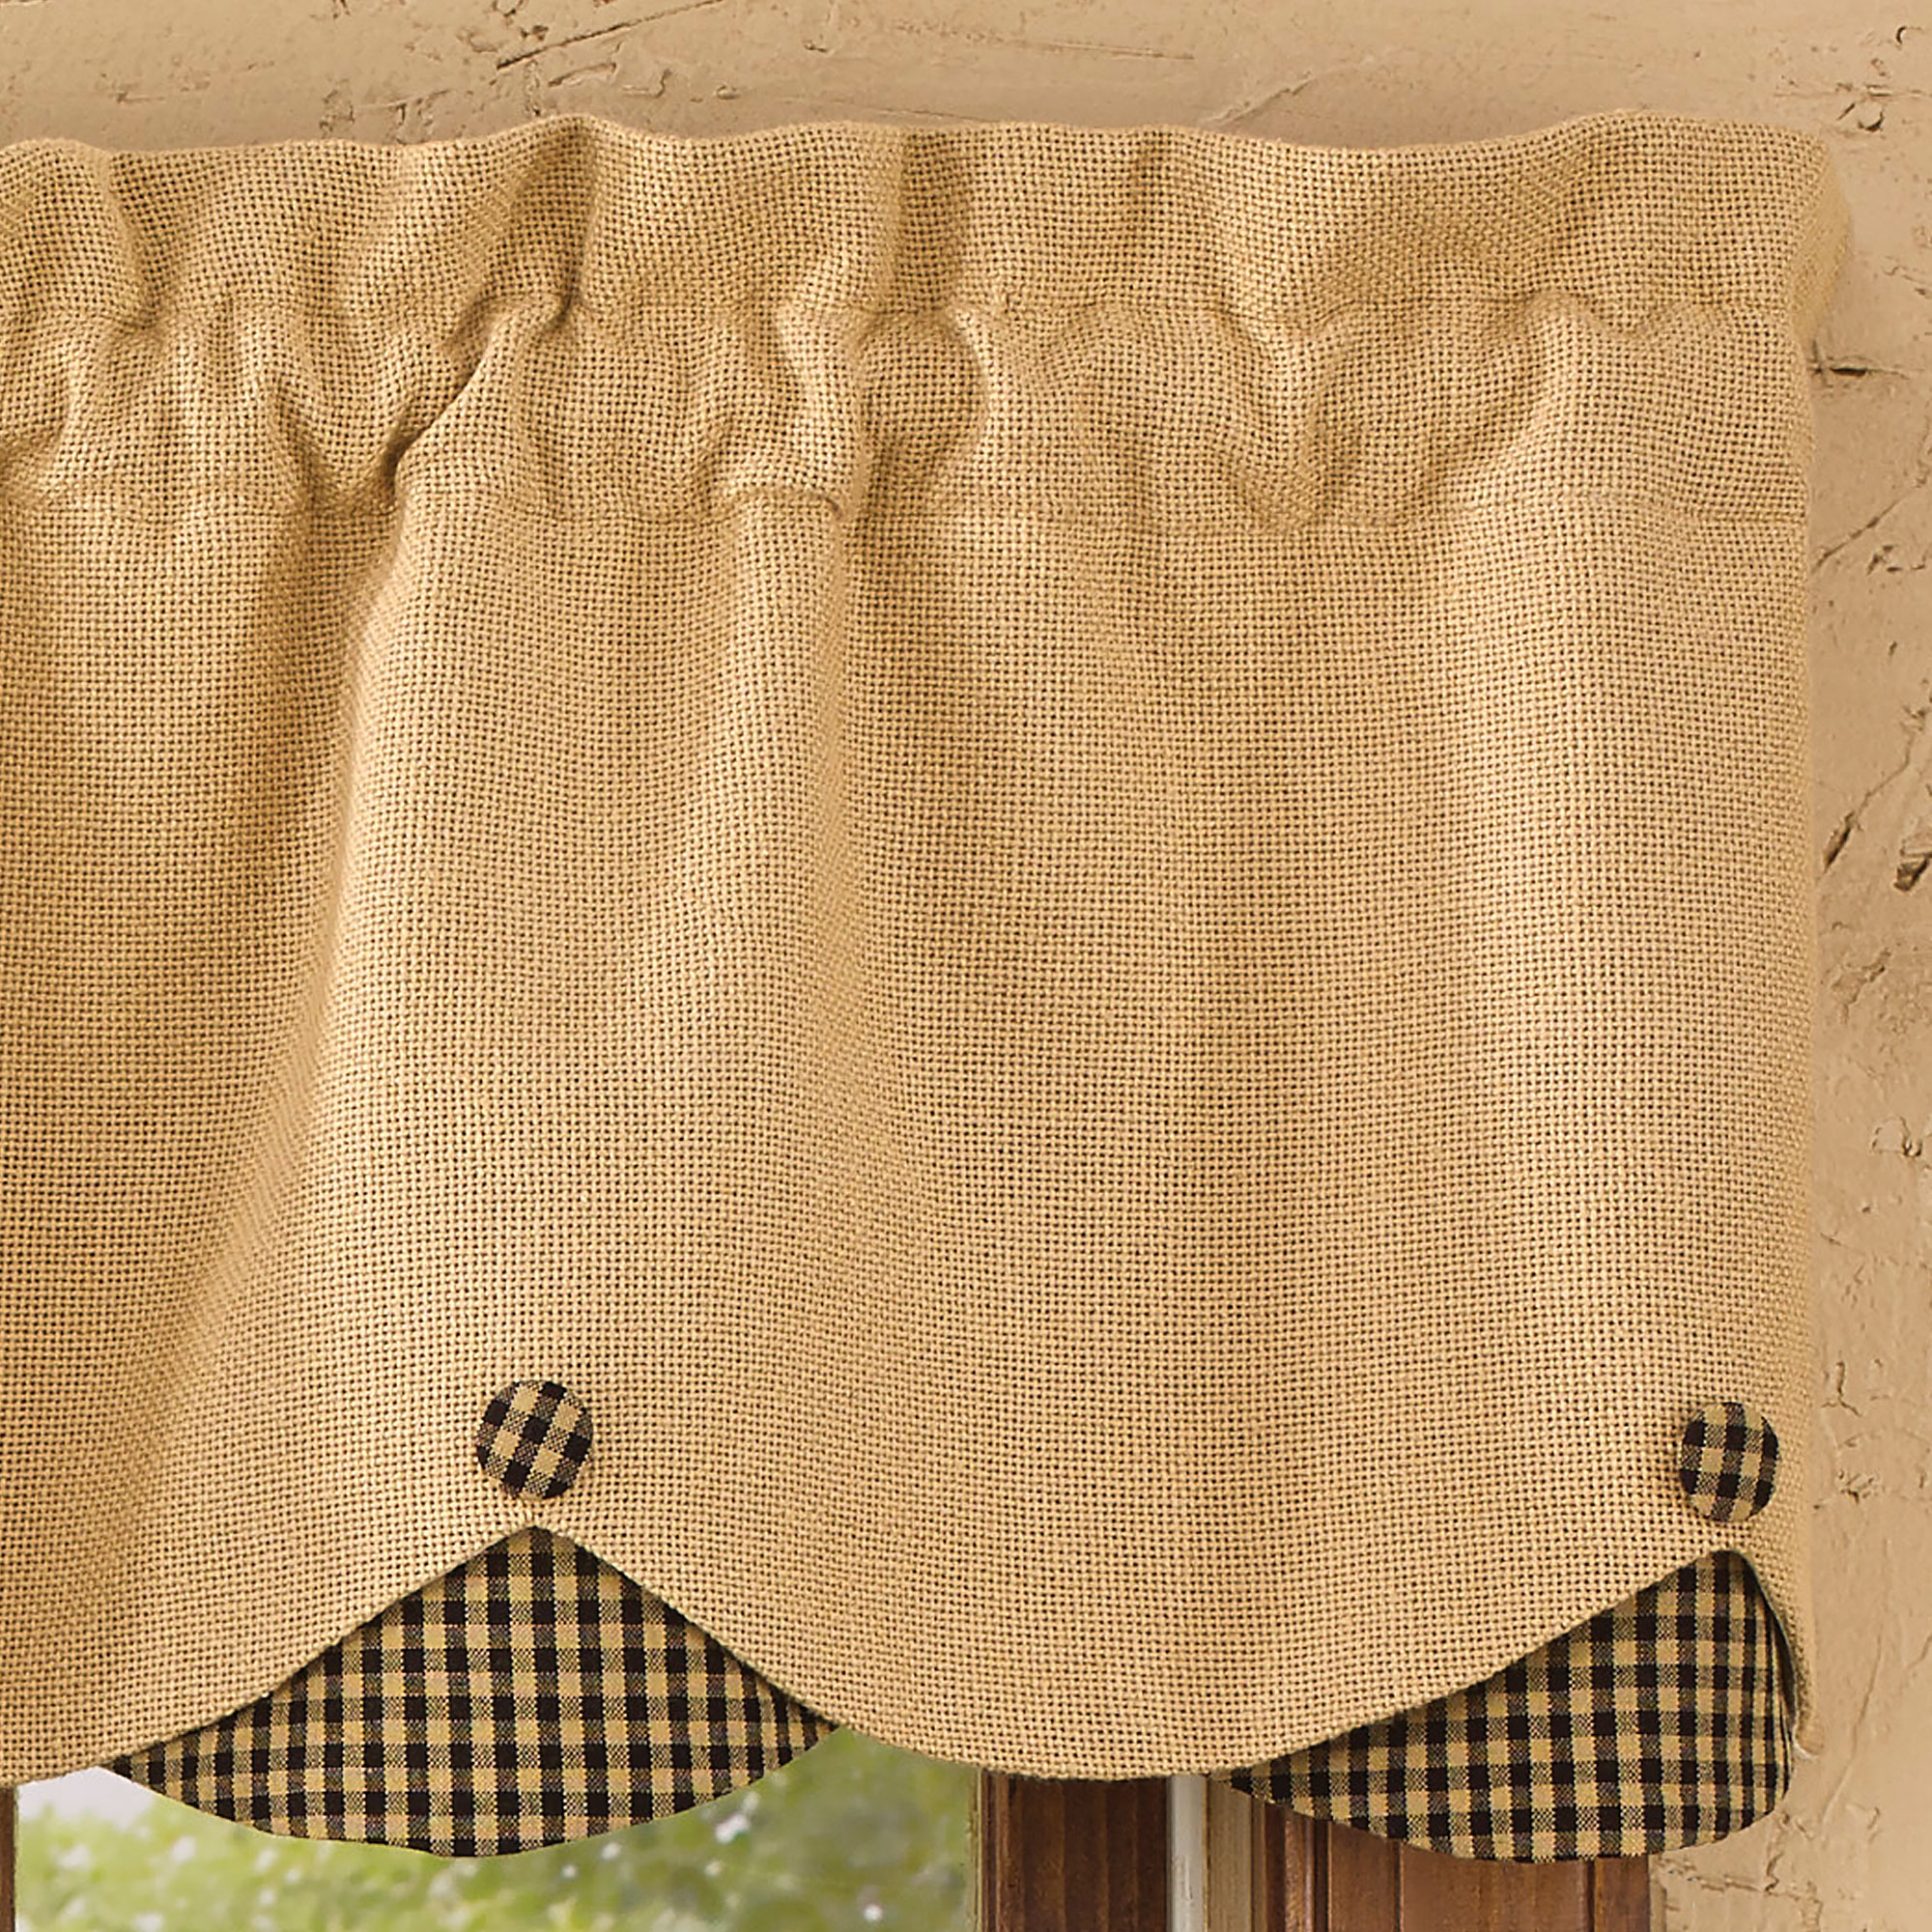 46 Best Images About Window Valance Patterns On Pinterest: Burlap And Check Scalloped Curtain Valance By Park Designs